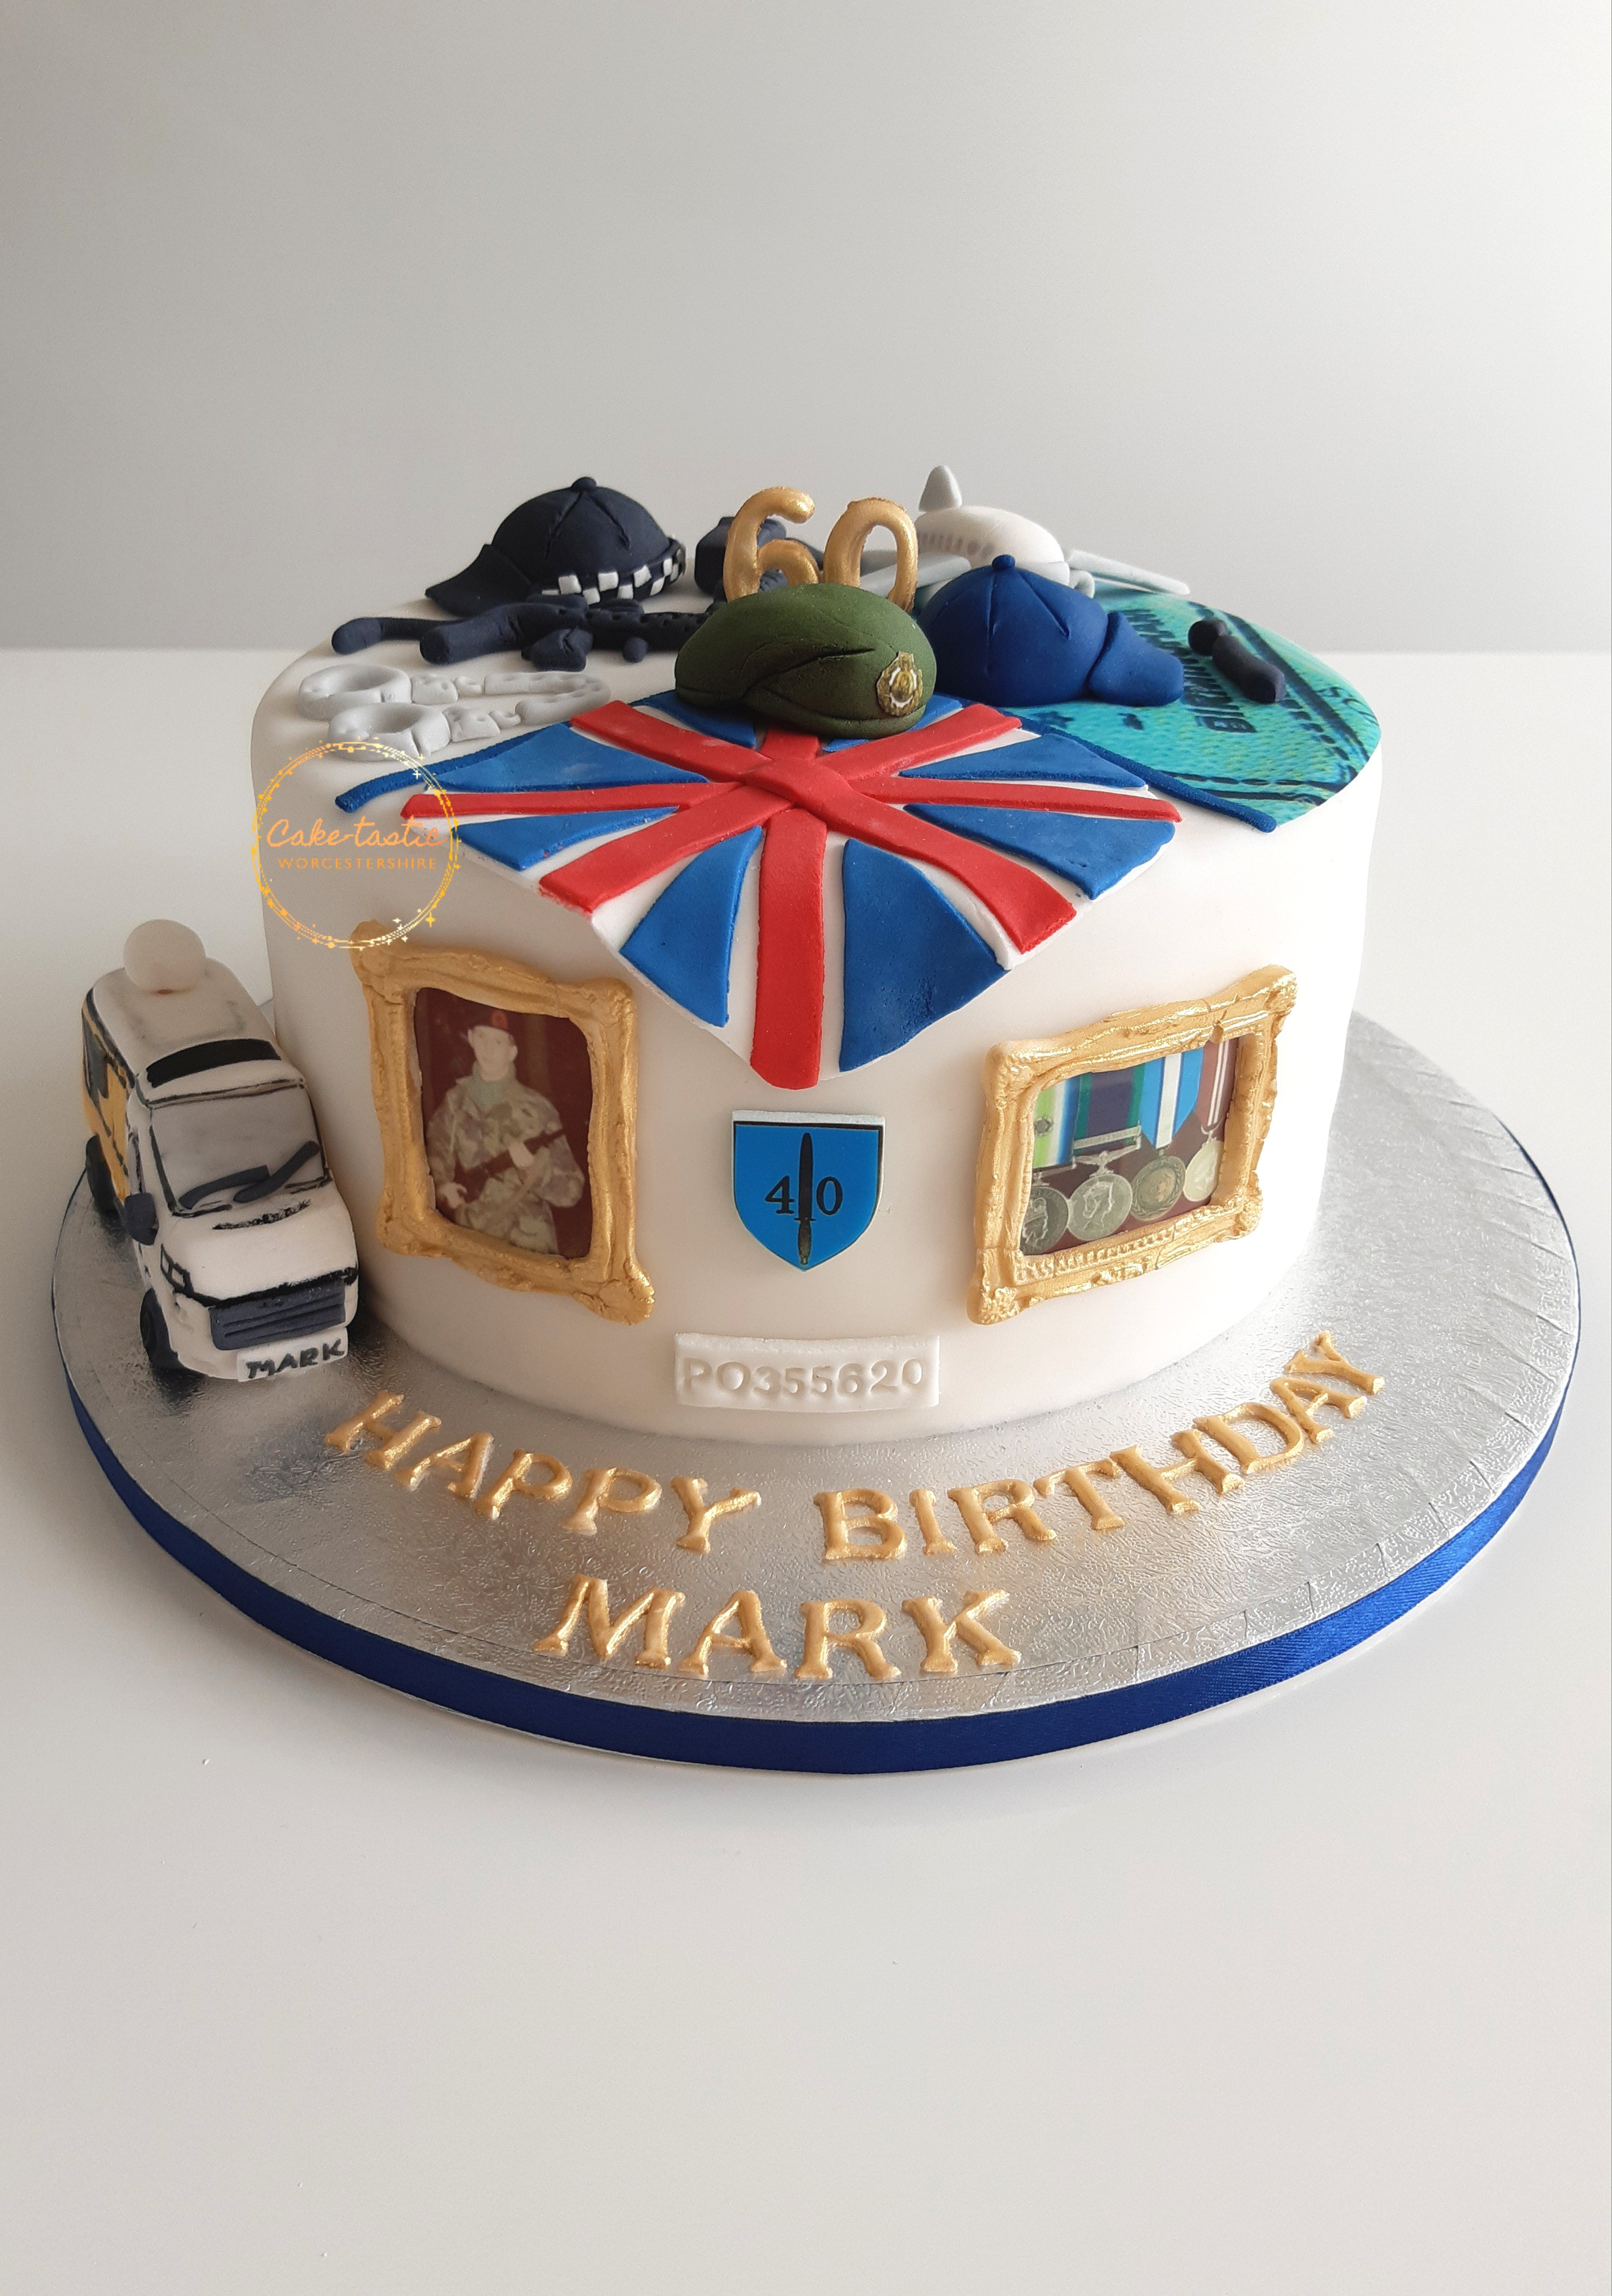 60th Birthday Cake - My Life in Cake